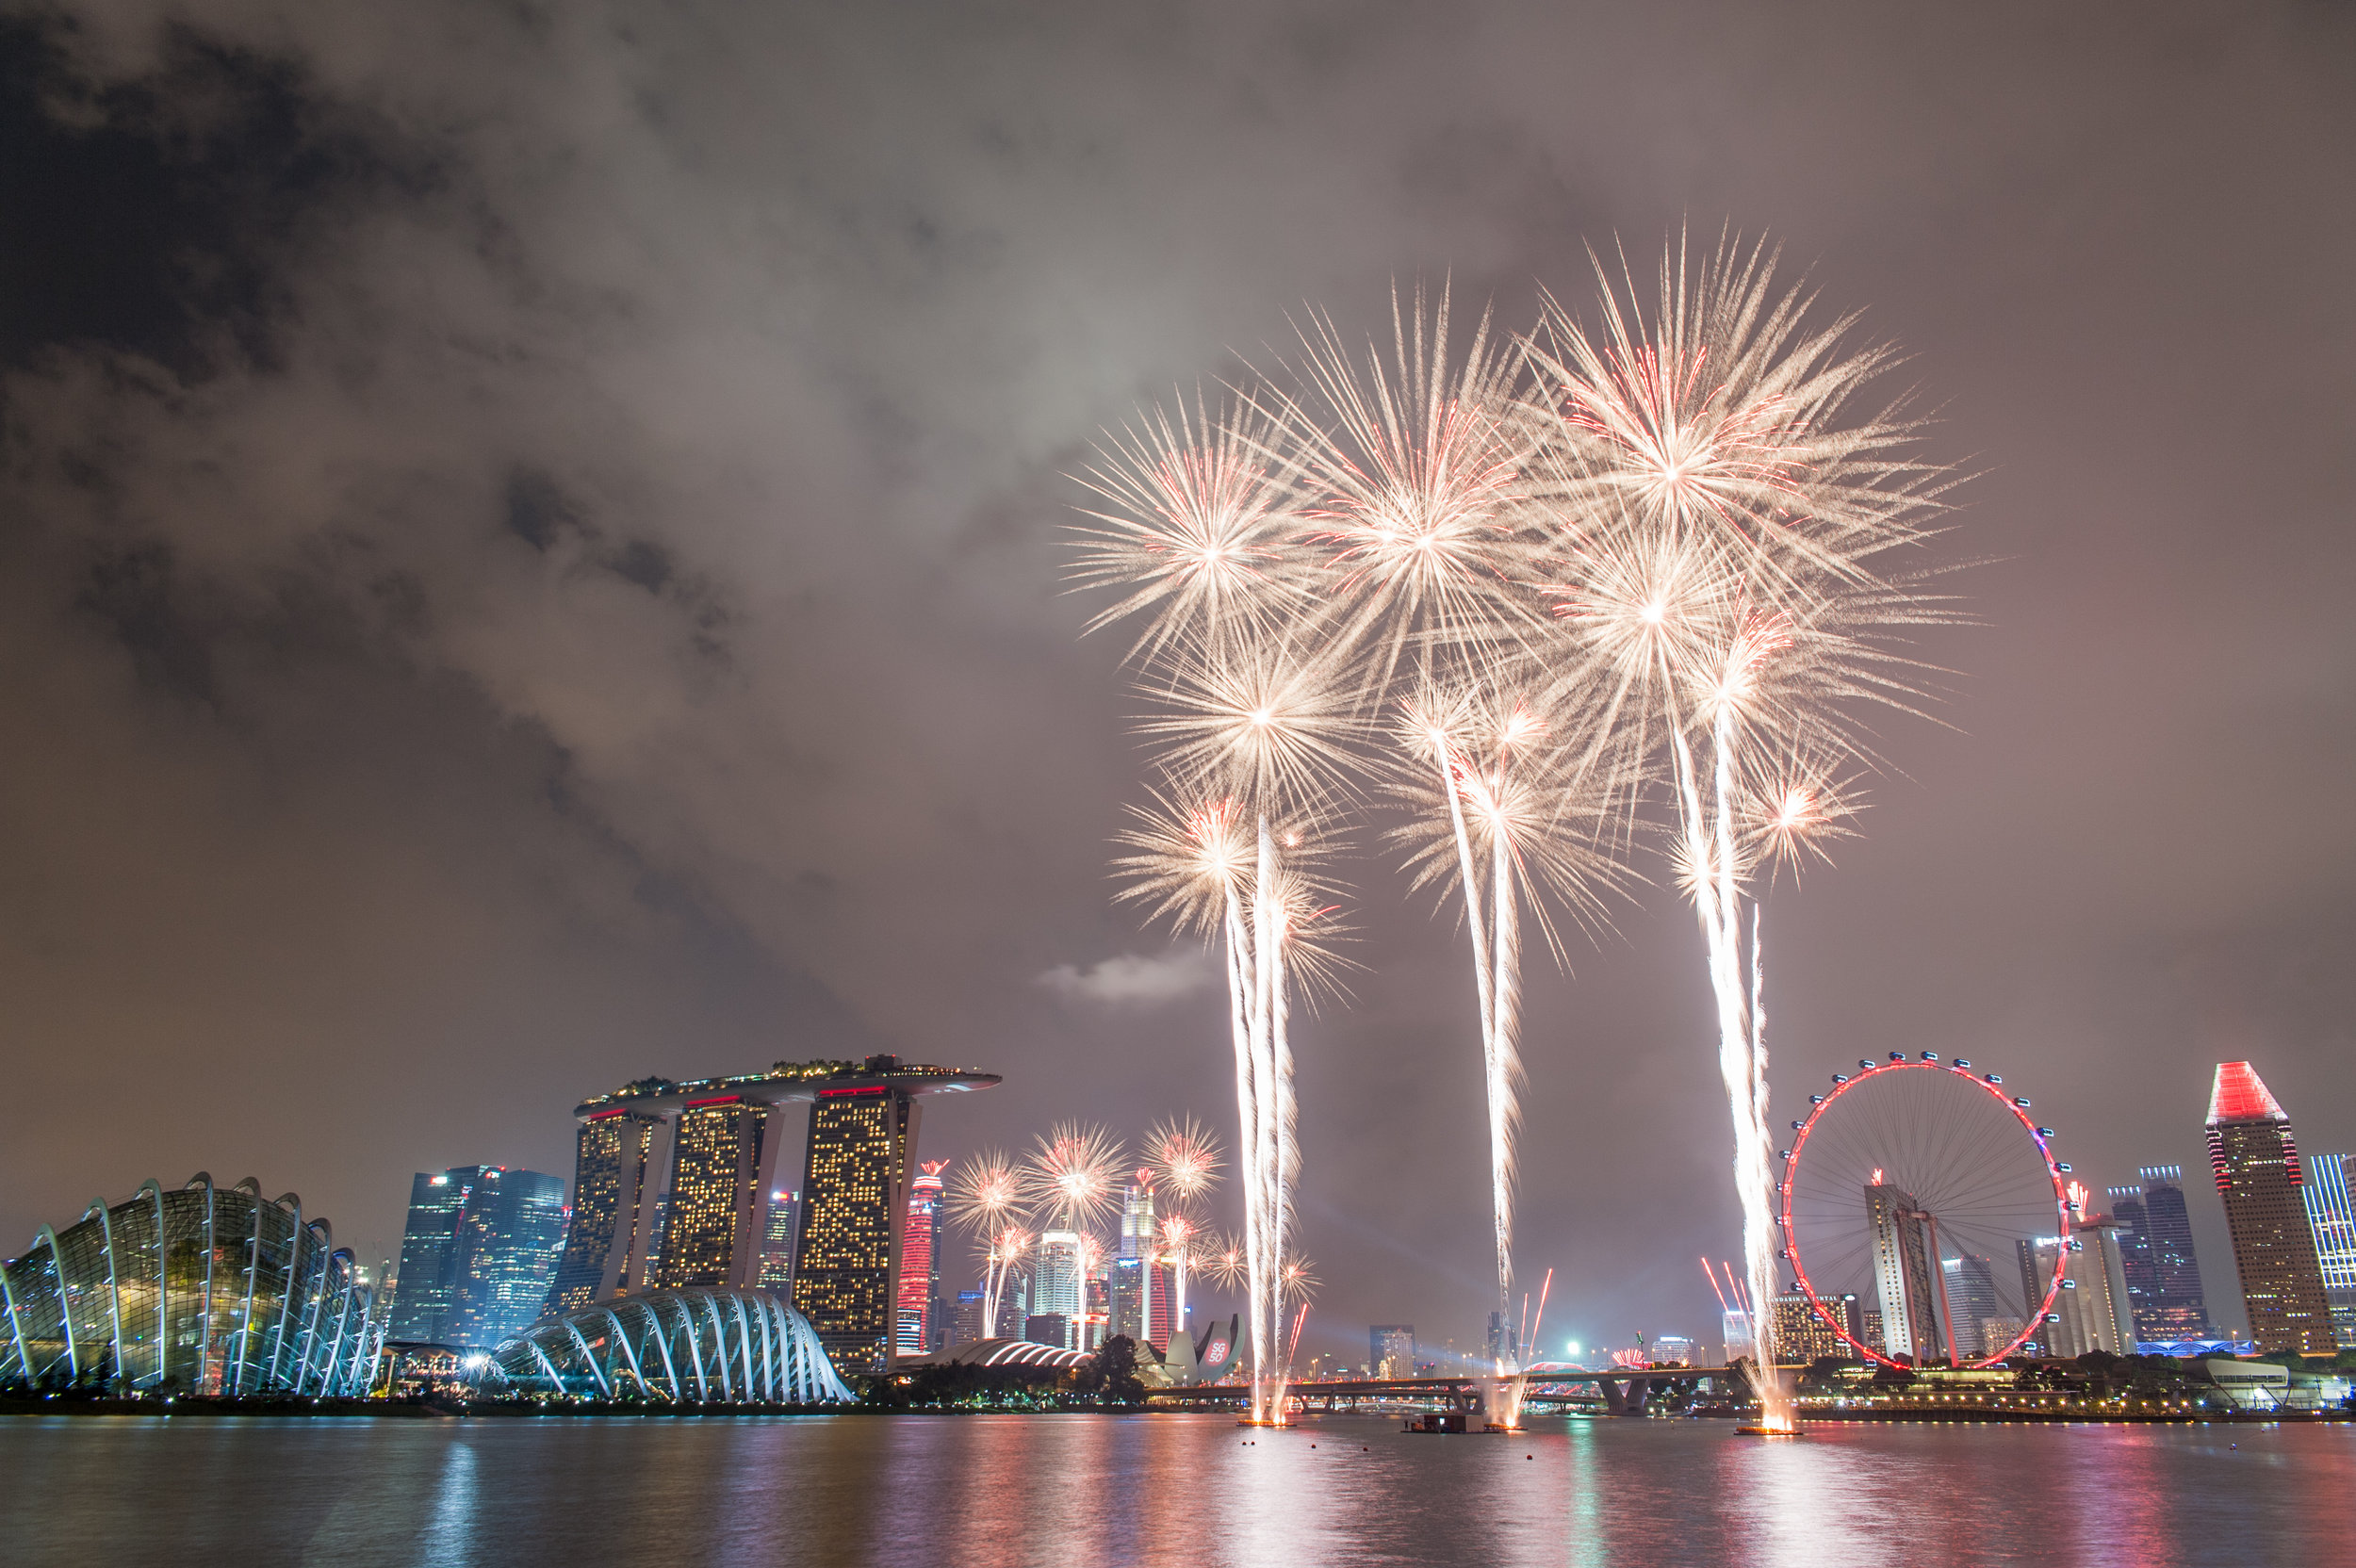 Singapore's National Day Fireworks Display